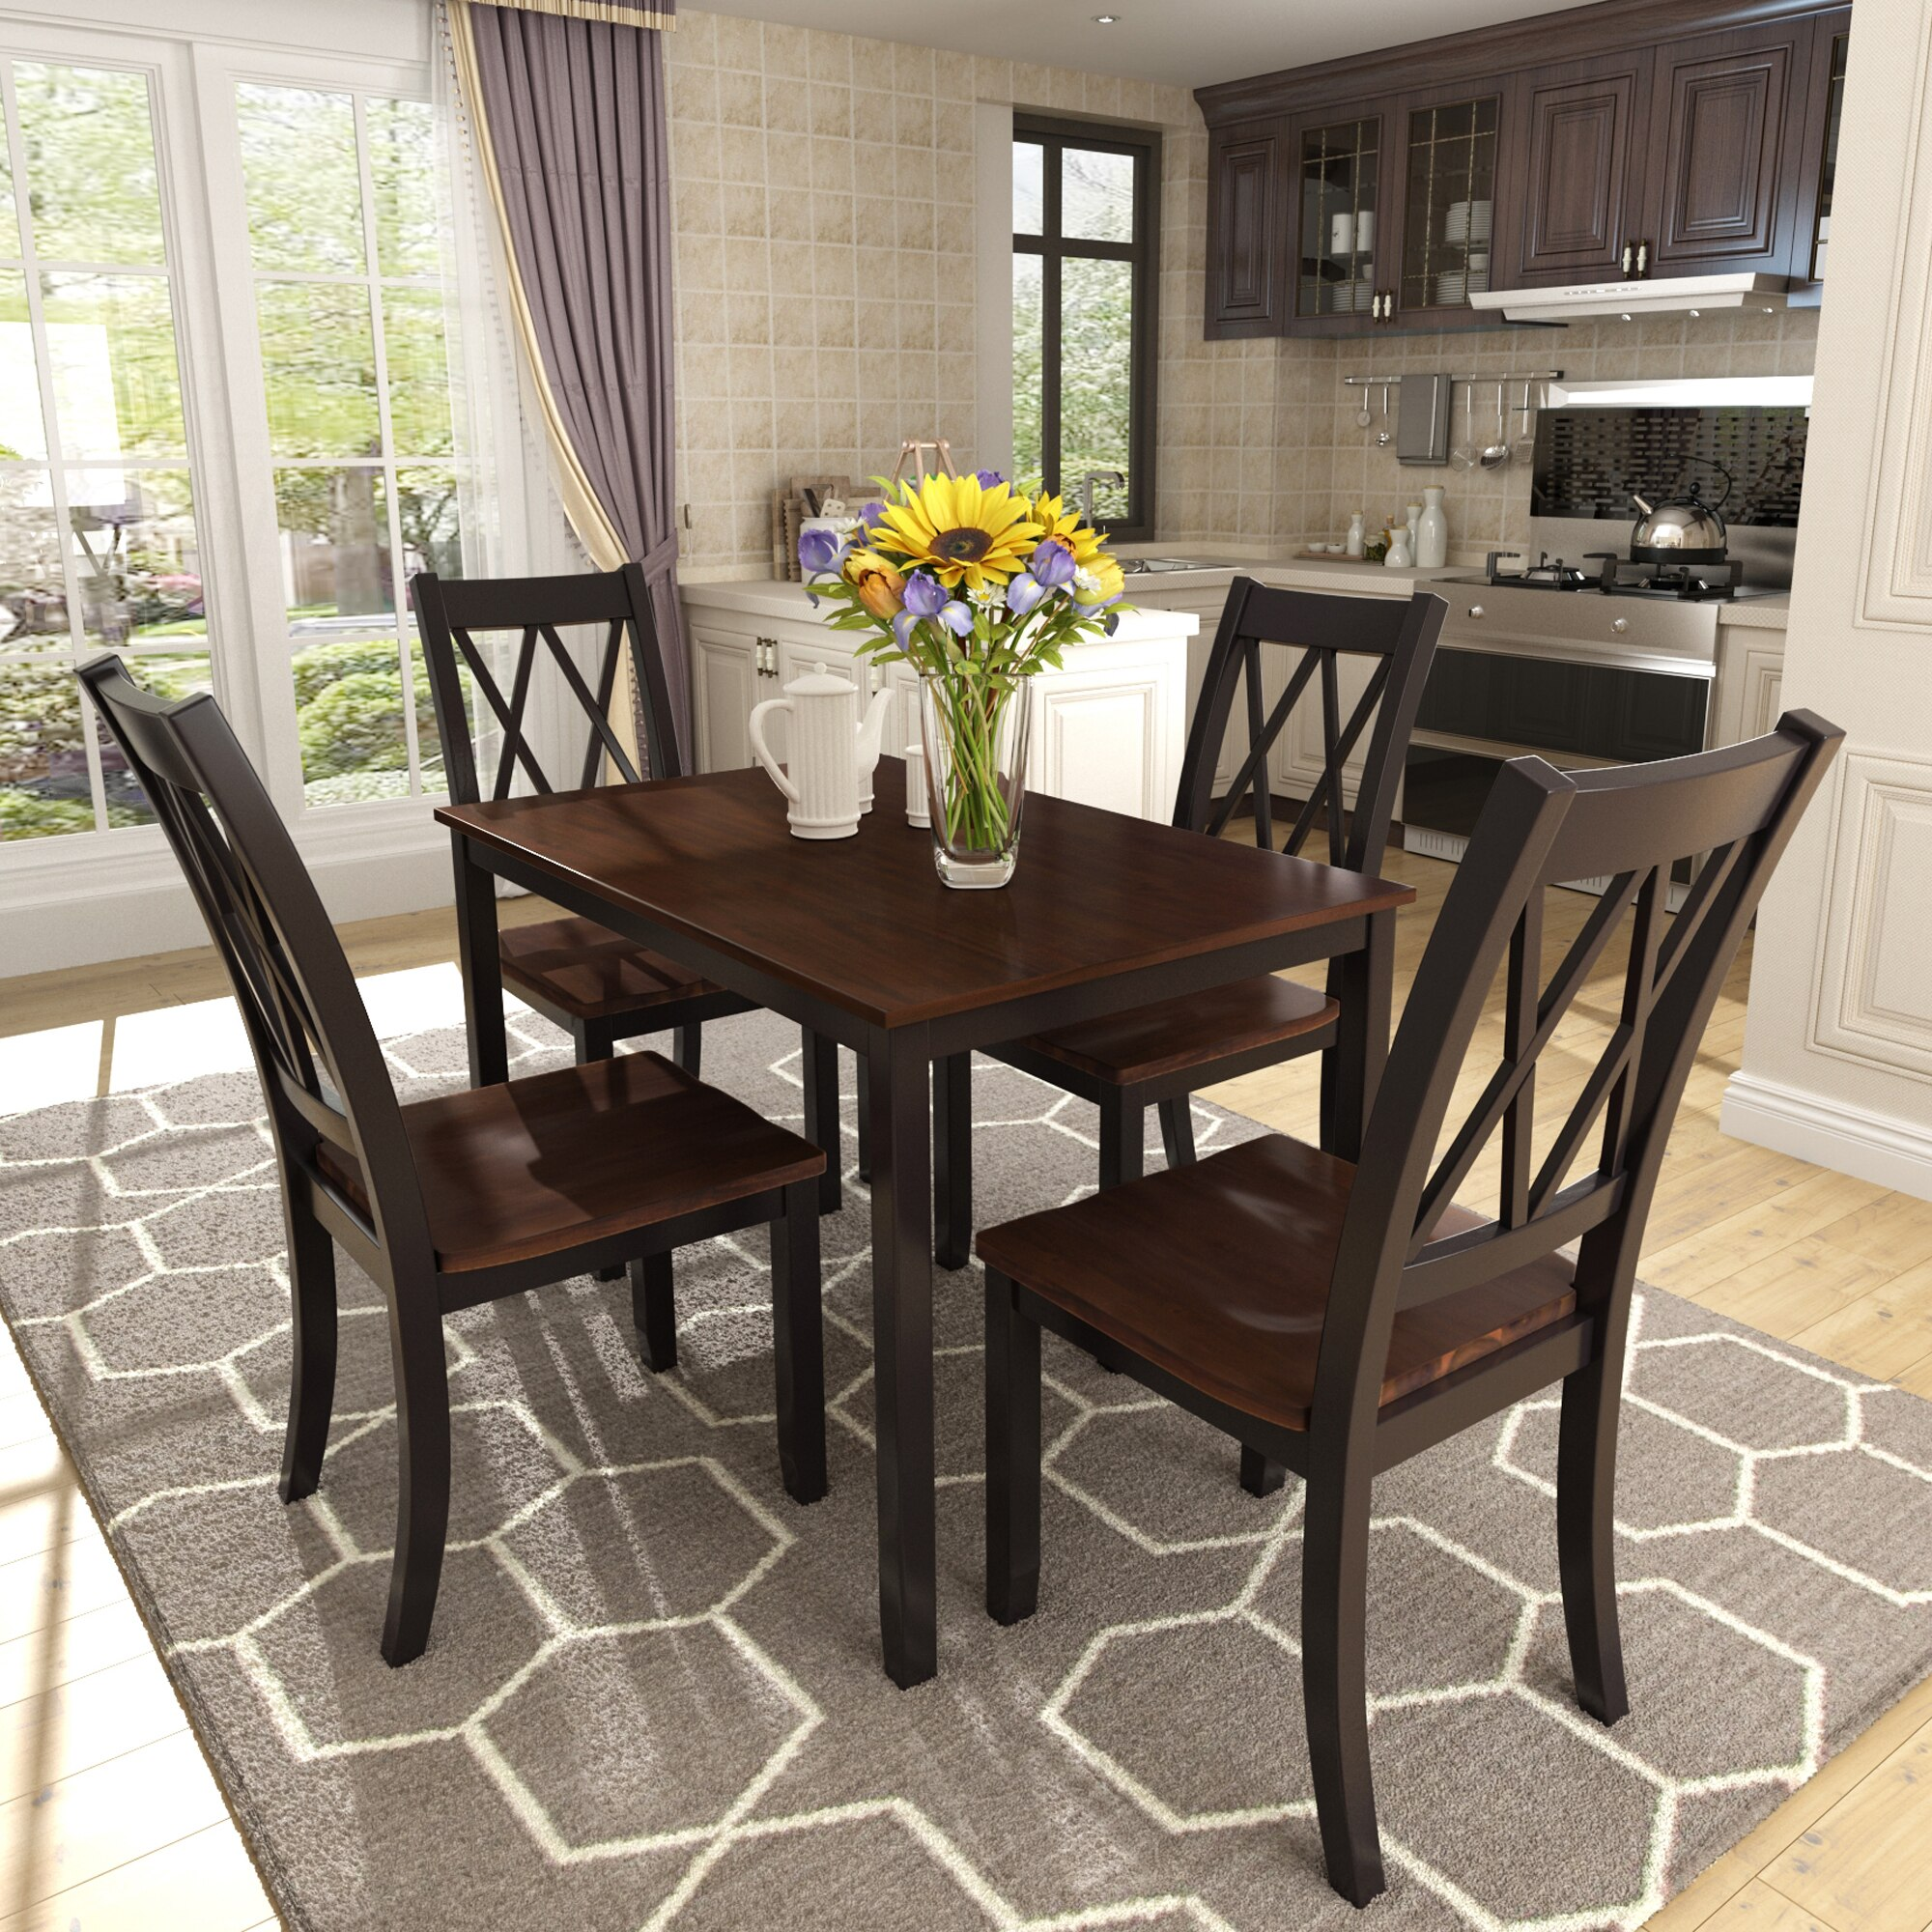 Classical 5 Piece Dining Table Set Home Kitchen Table And Chairs Wood Dining Set Black Cherry Aliexpress